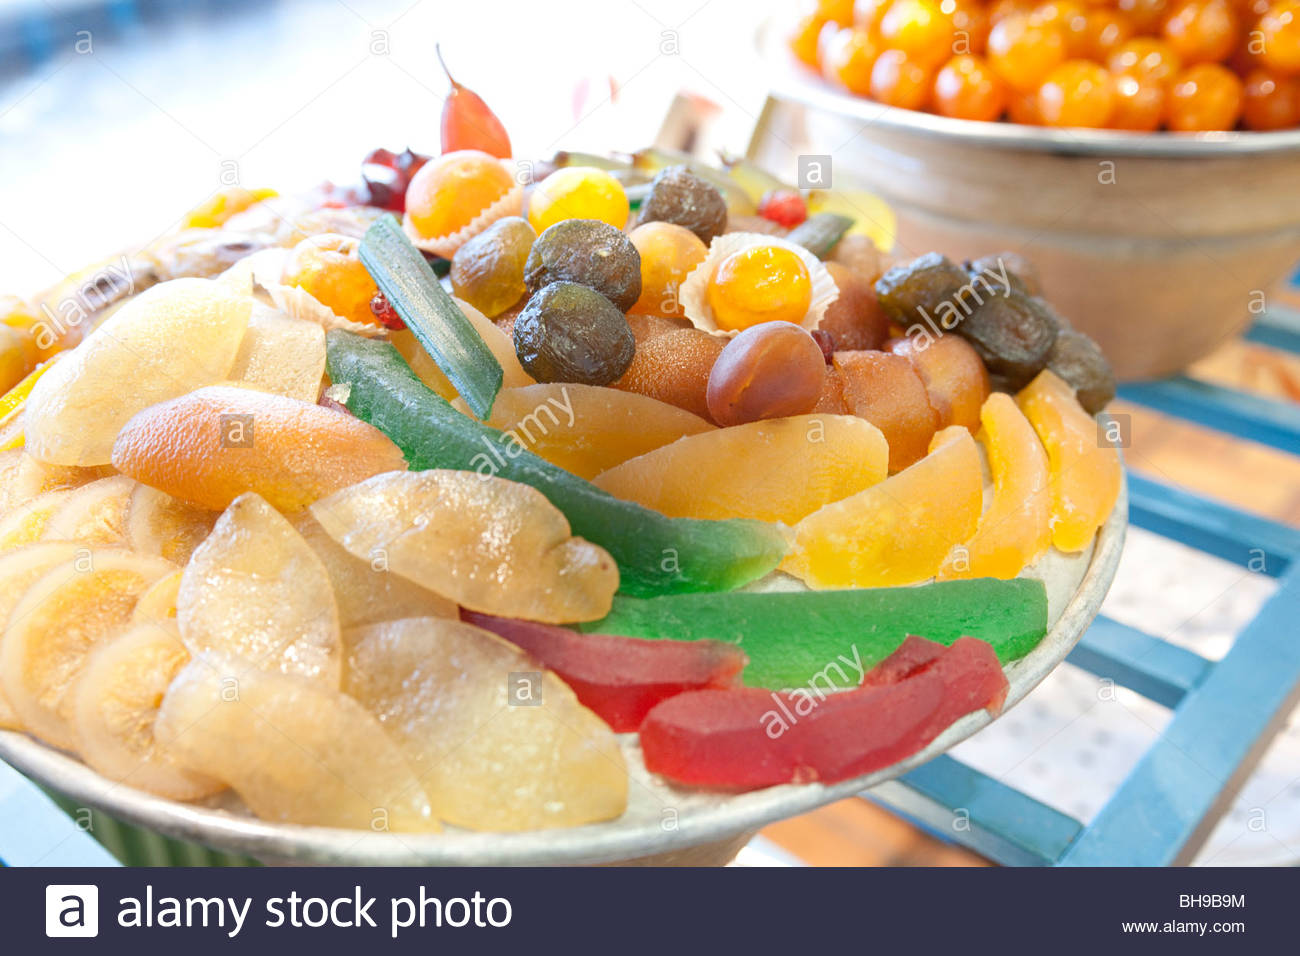 Large bowl, mixed glaced fruit, confectionery Confiserie Florian, Nice, France - Stock Image